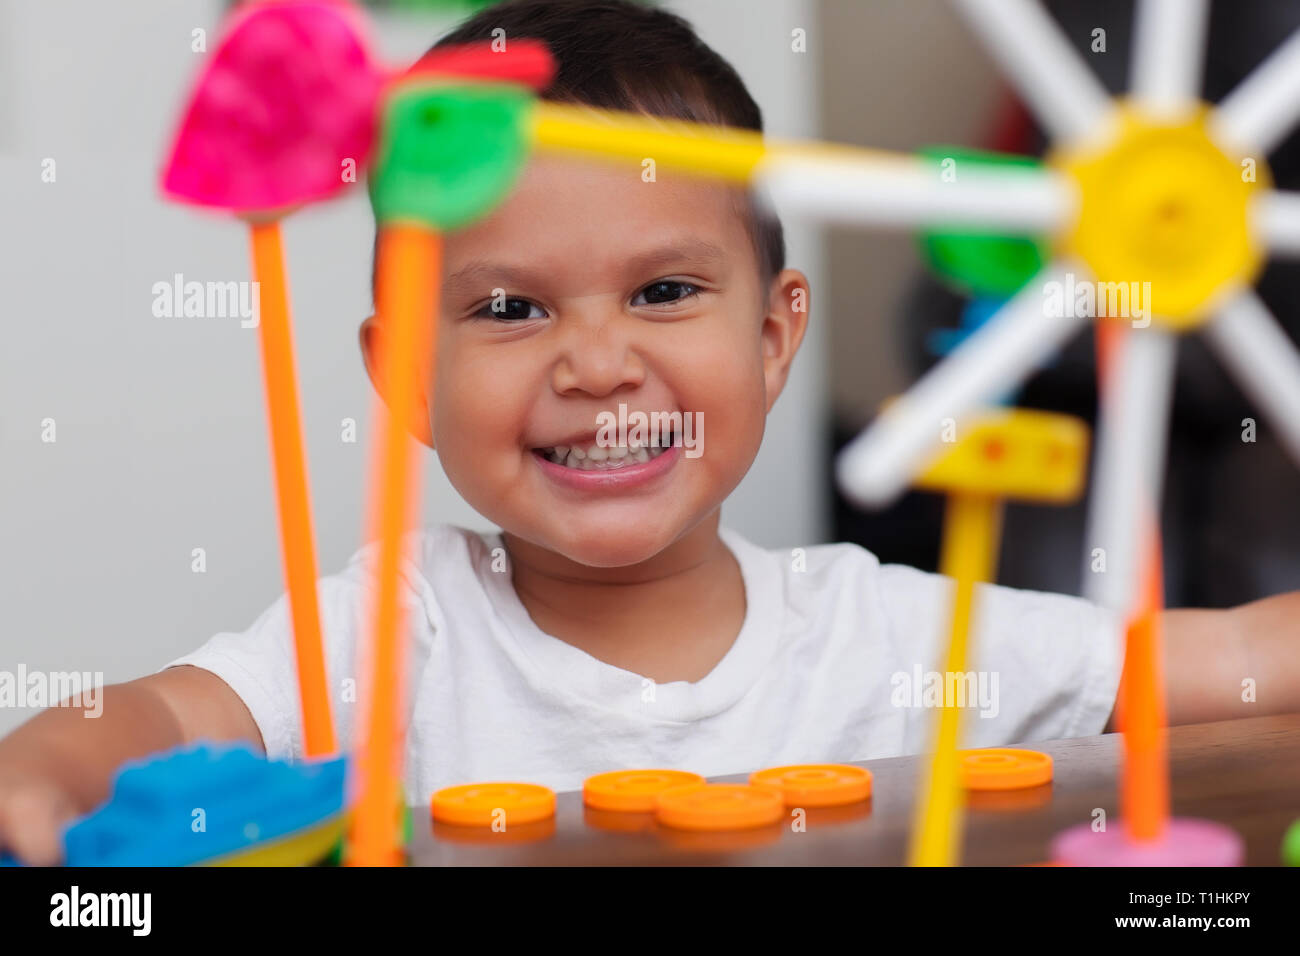 A hispanic boy with big smile while he plays with colorful building toys and learns to count with elementary manipulative toys. - Stock Image